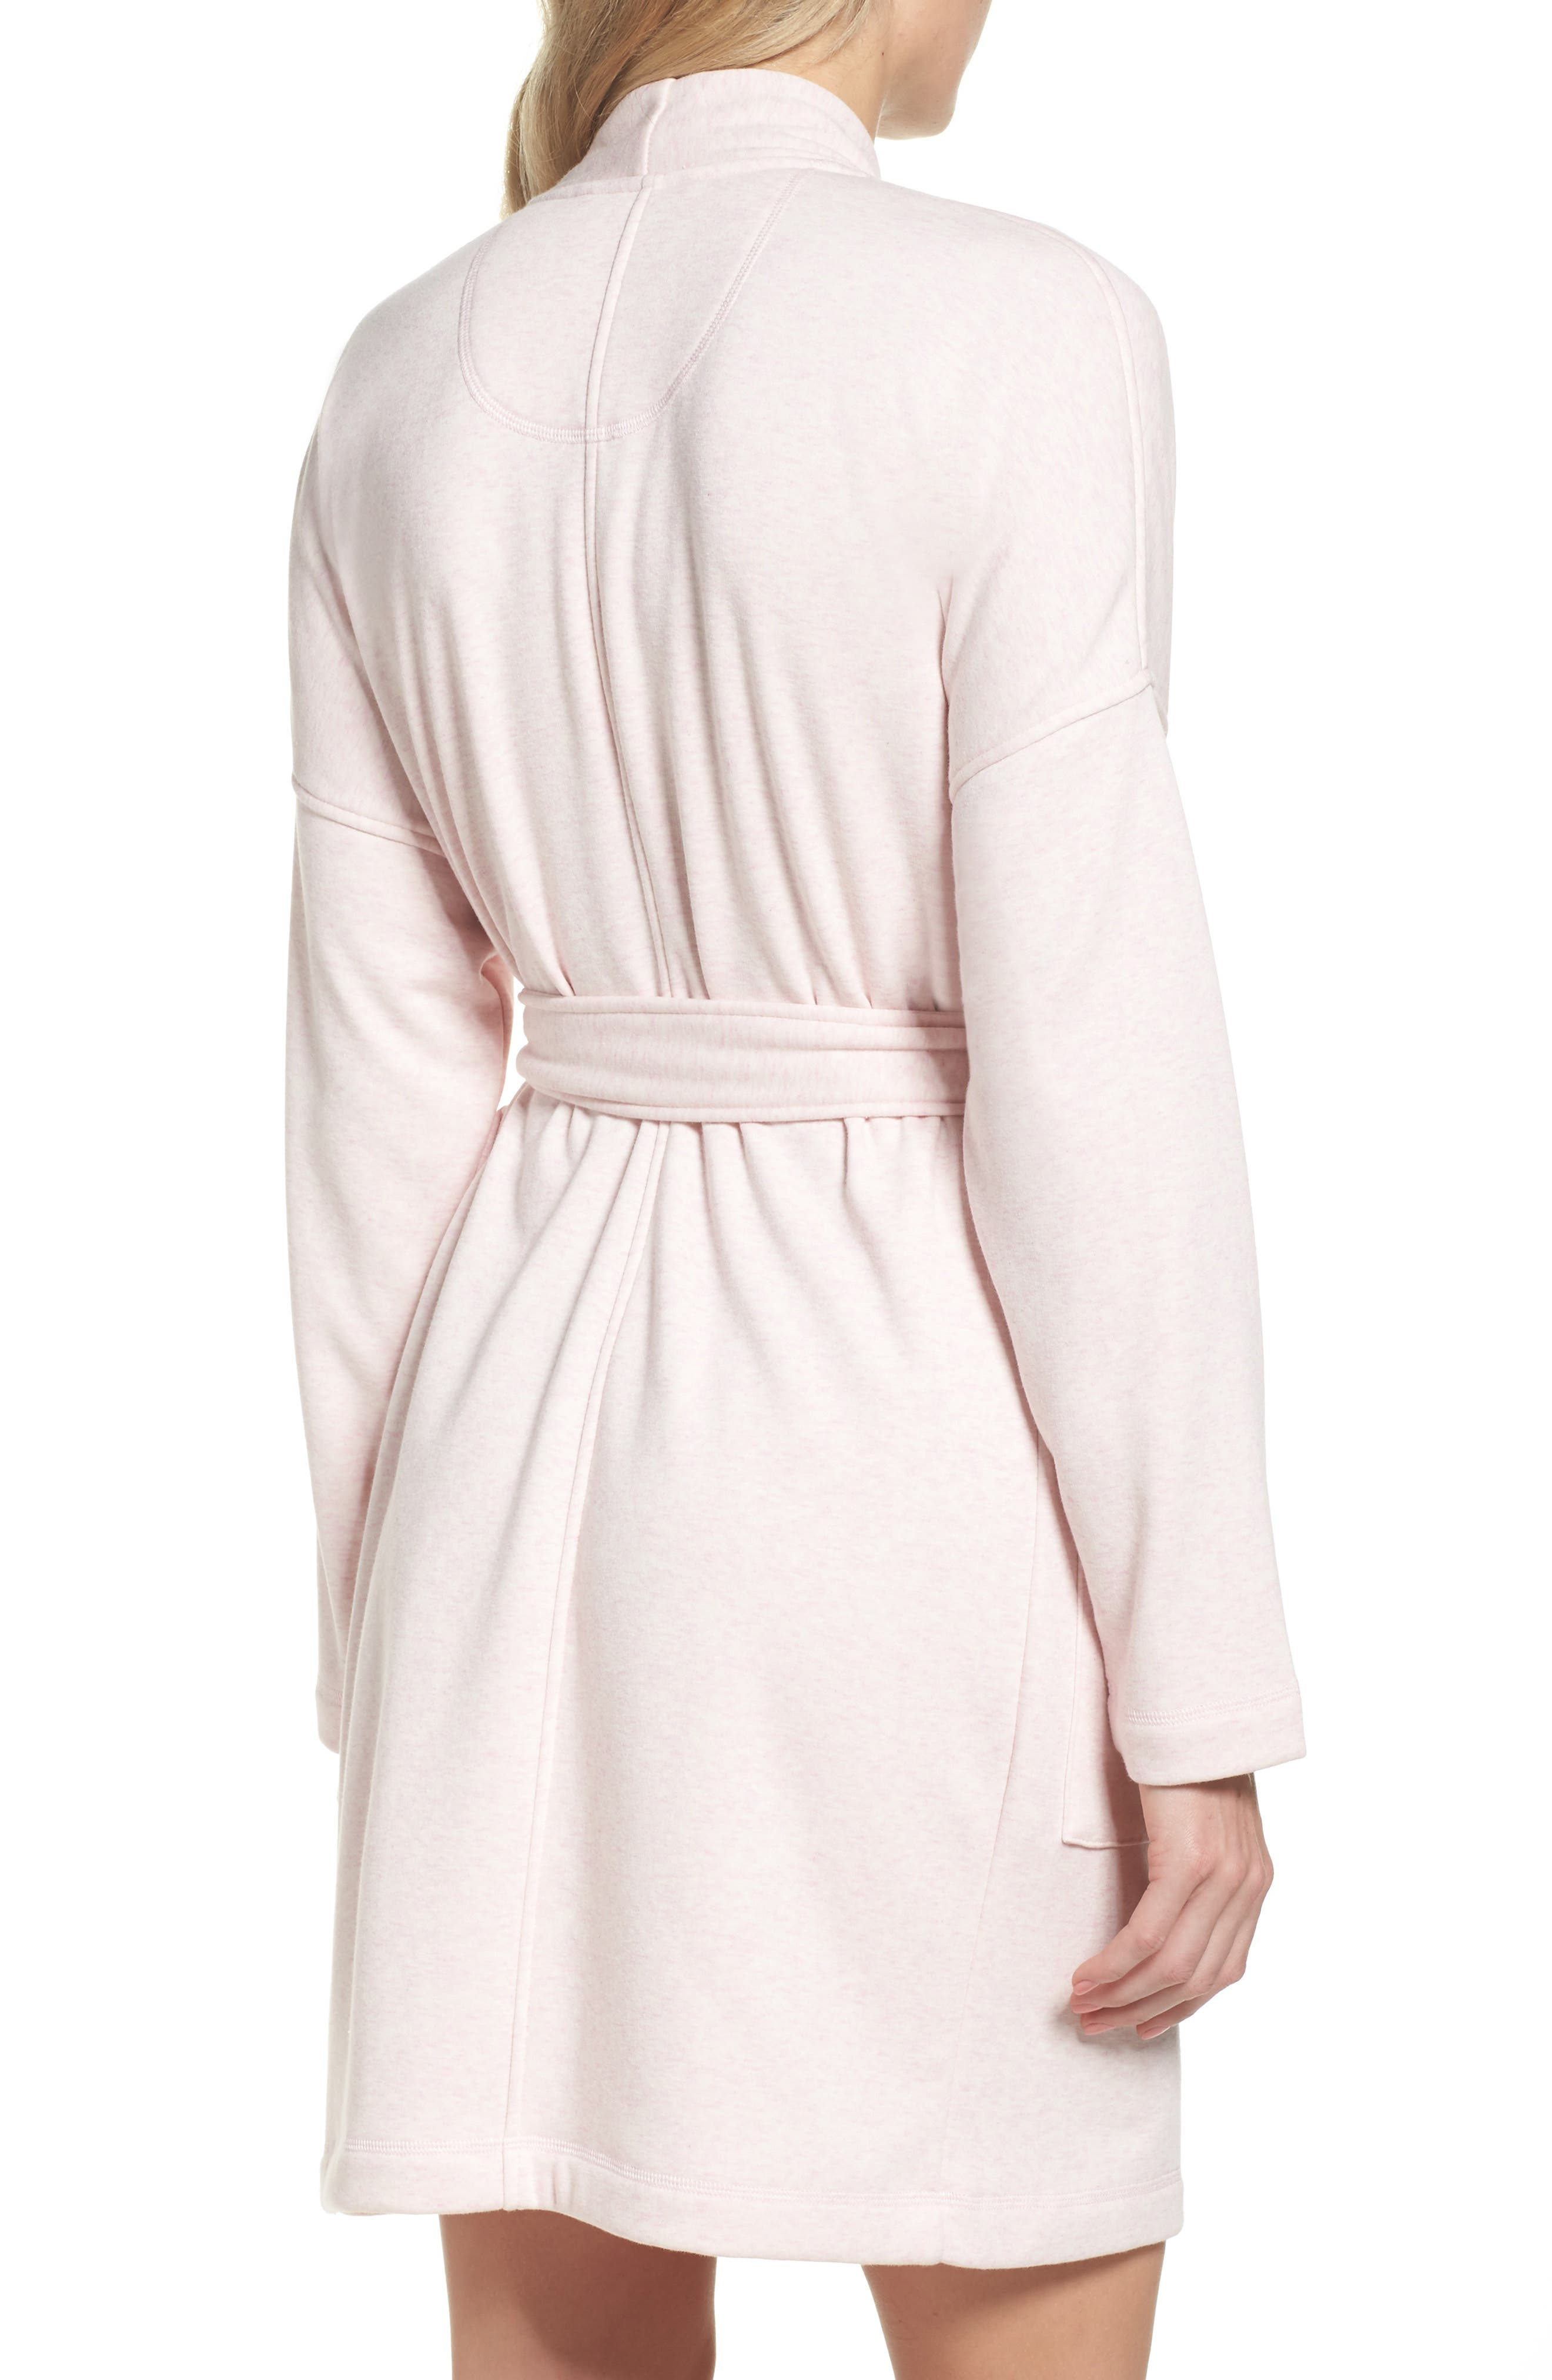 Braelyn Robe,                             Alternate thumbnail 2, color,                             Seashell Pink Heather